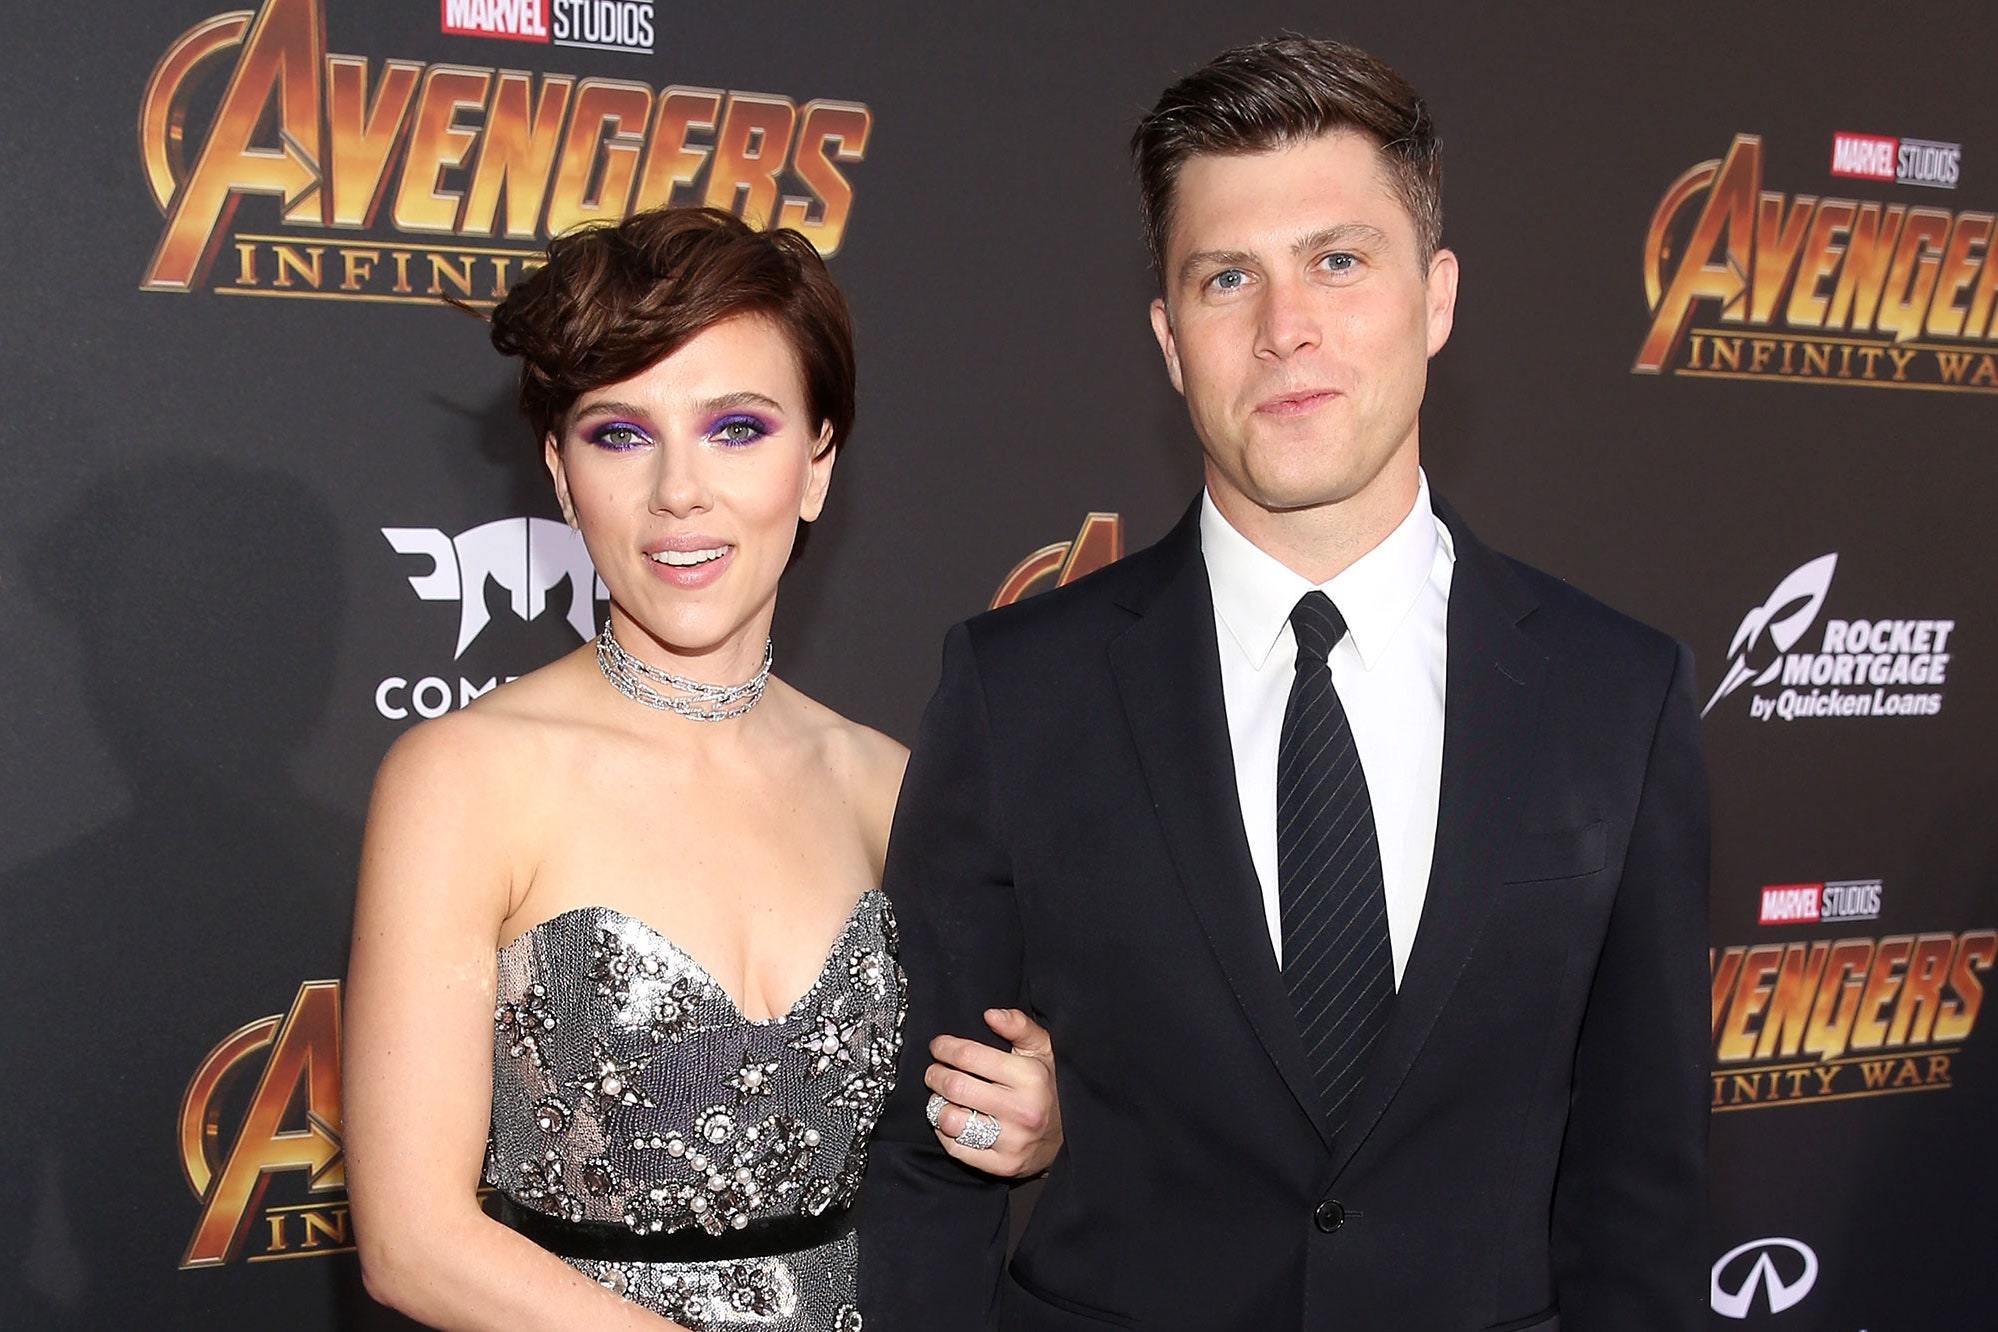 Scarlett Johansson and Colin Jost are Planning to get Married and have a Baby